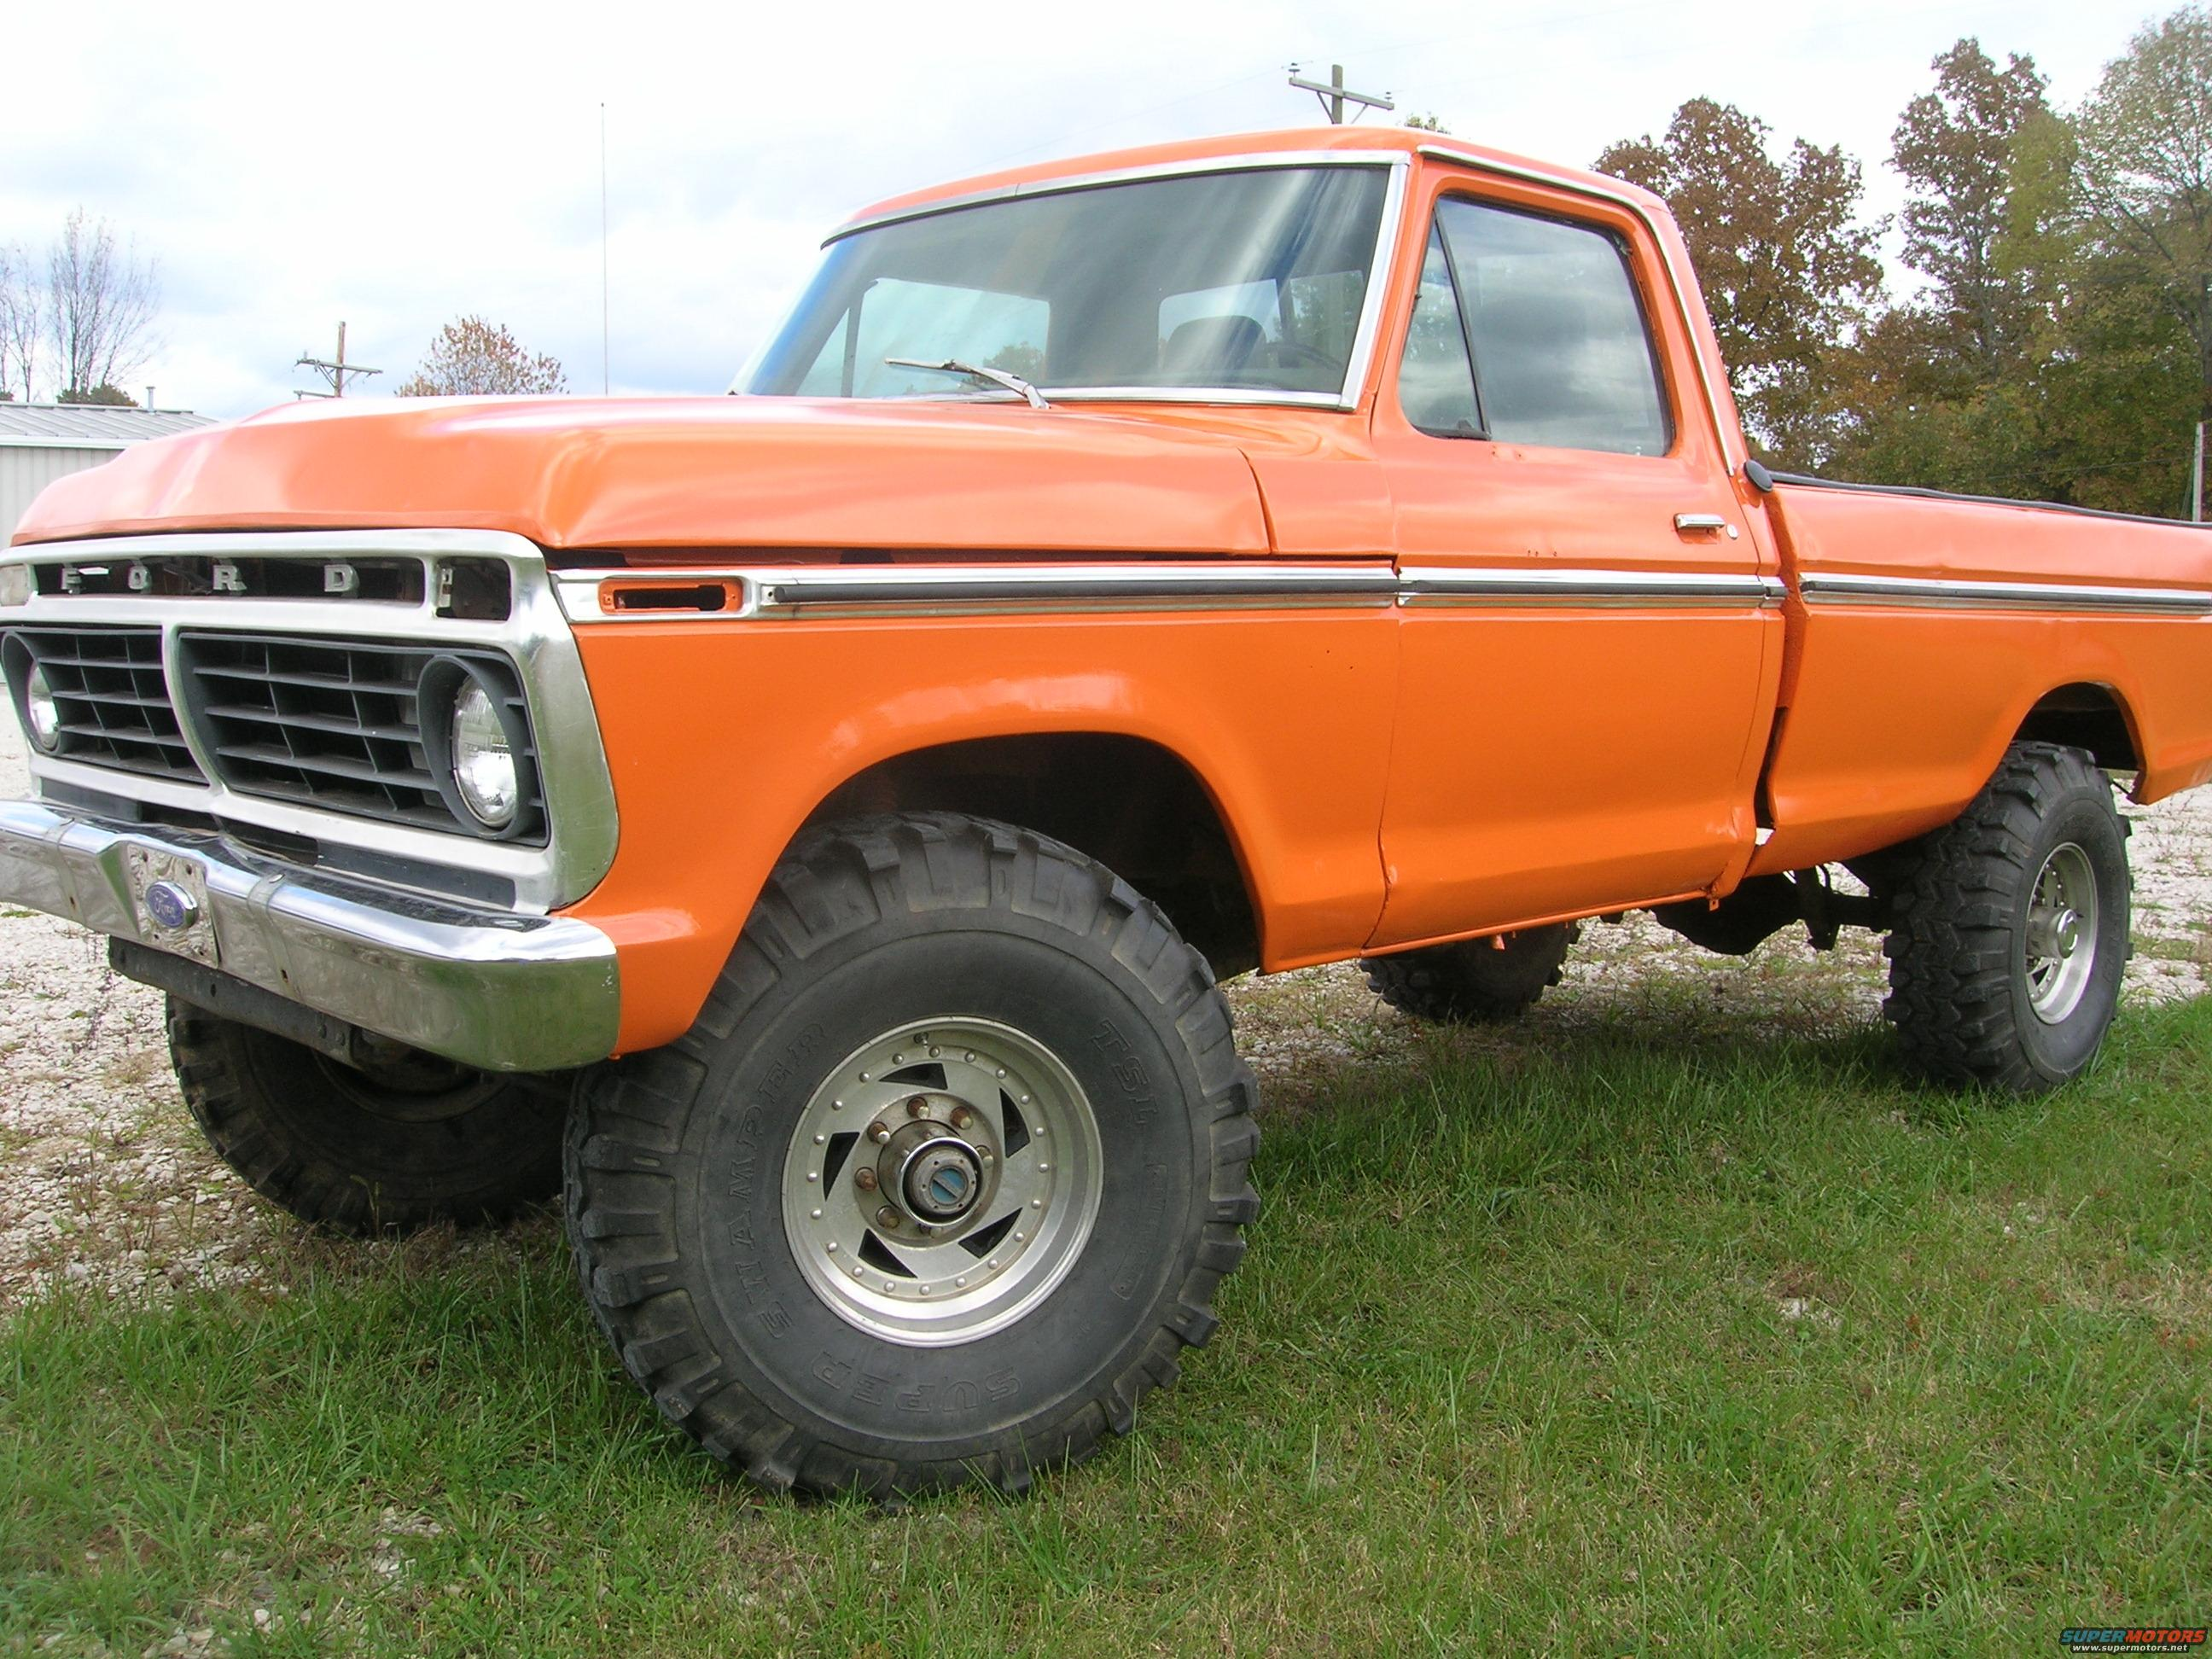 Ford f-250 1975 photo - 6